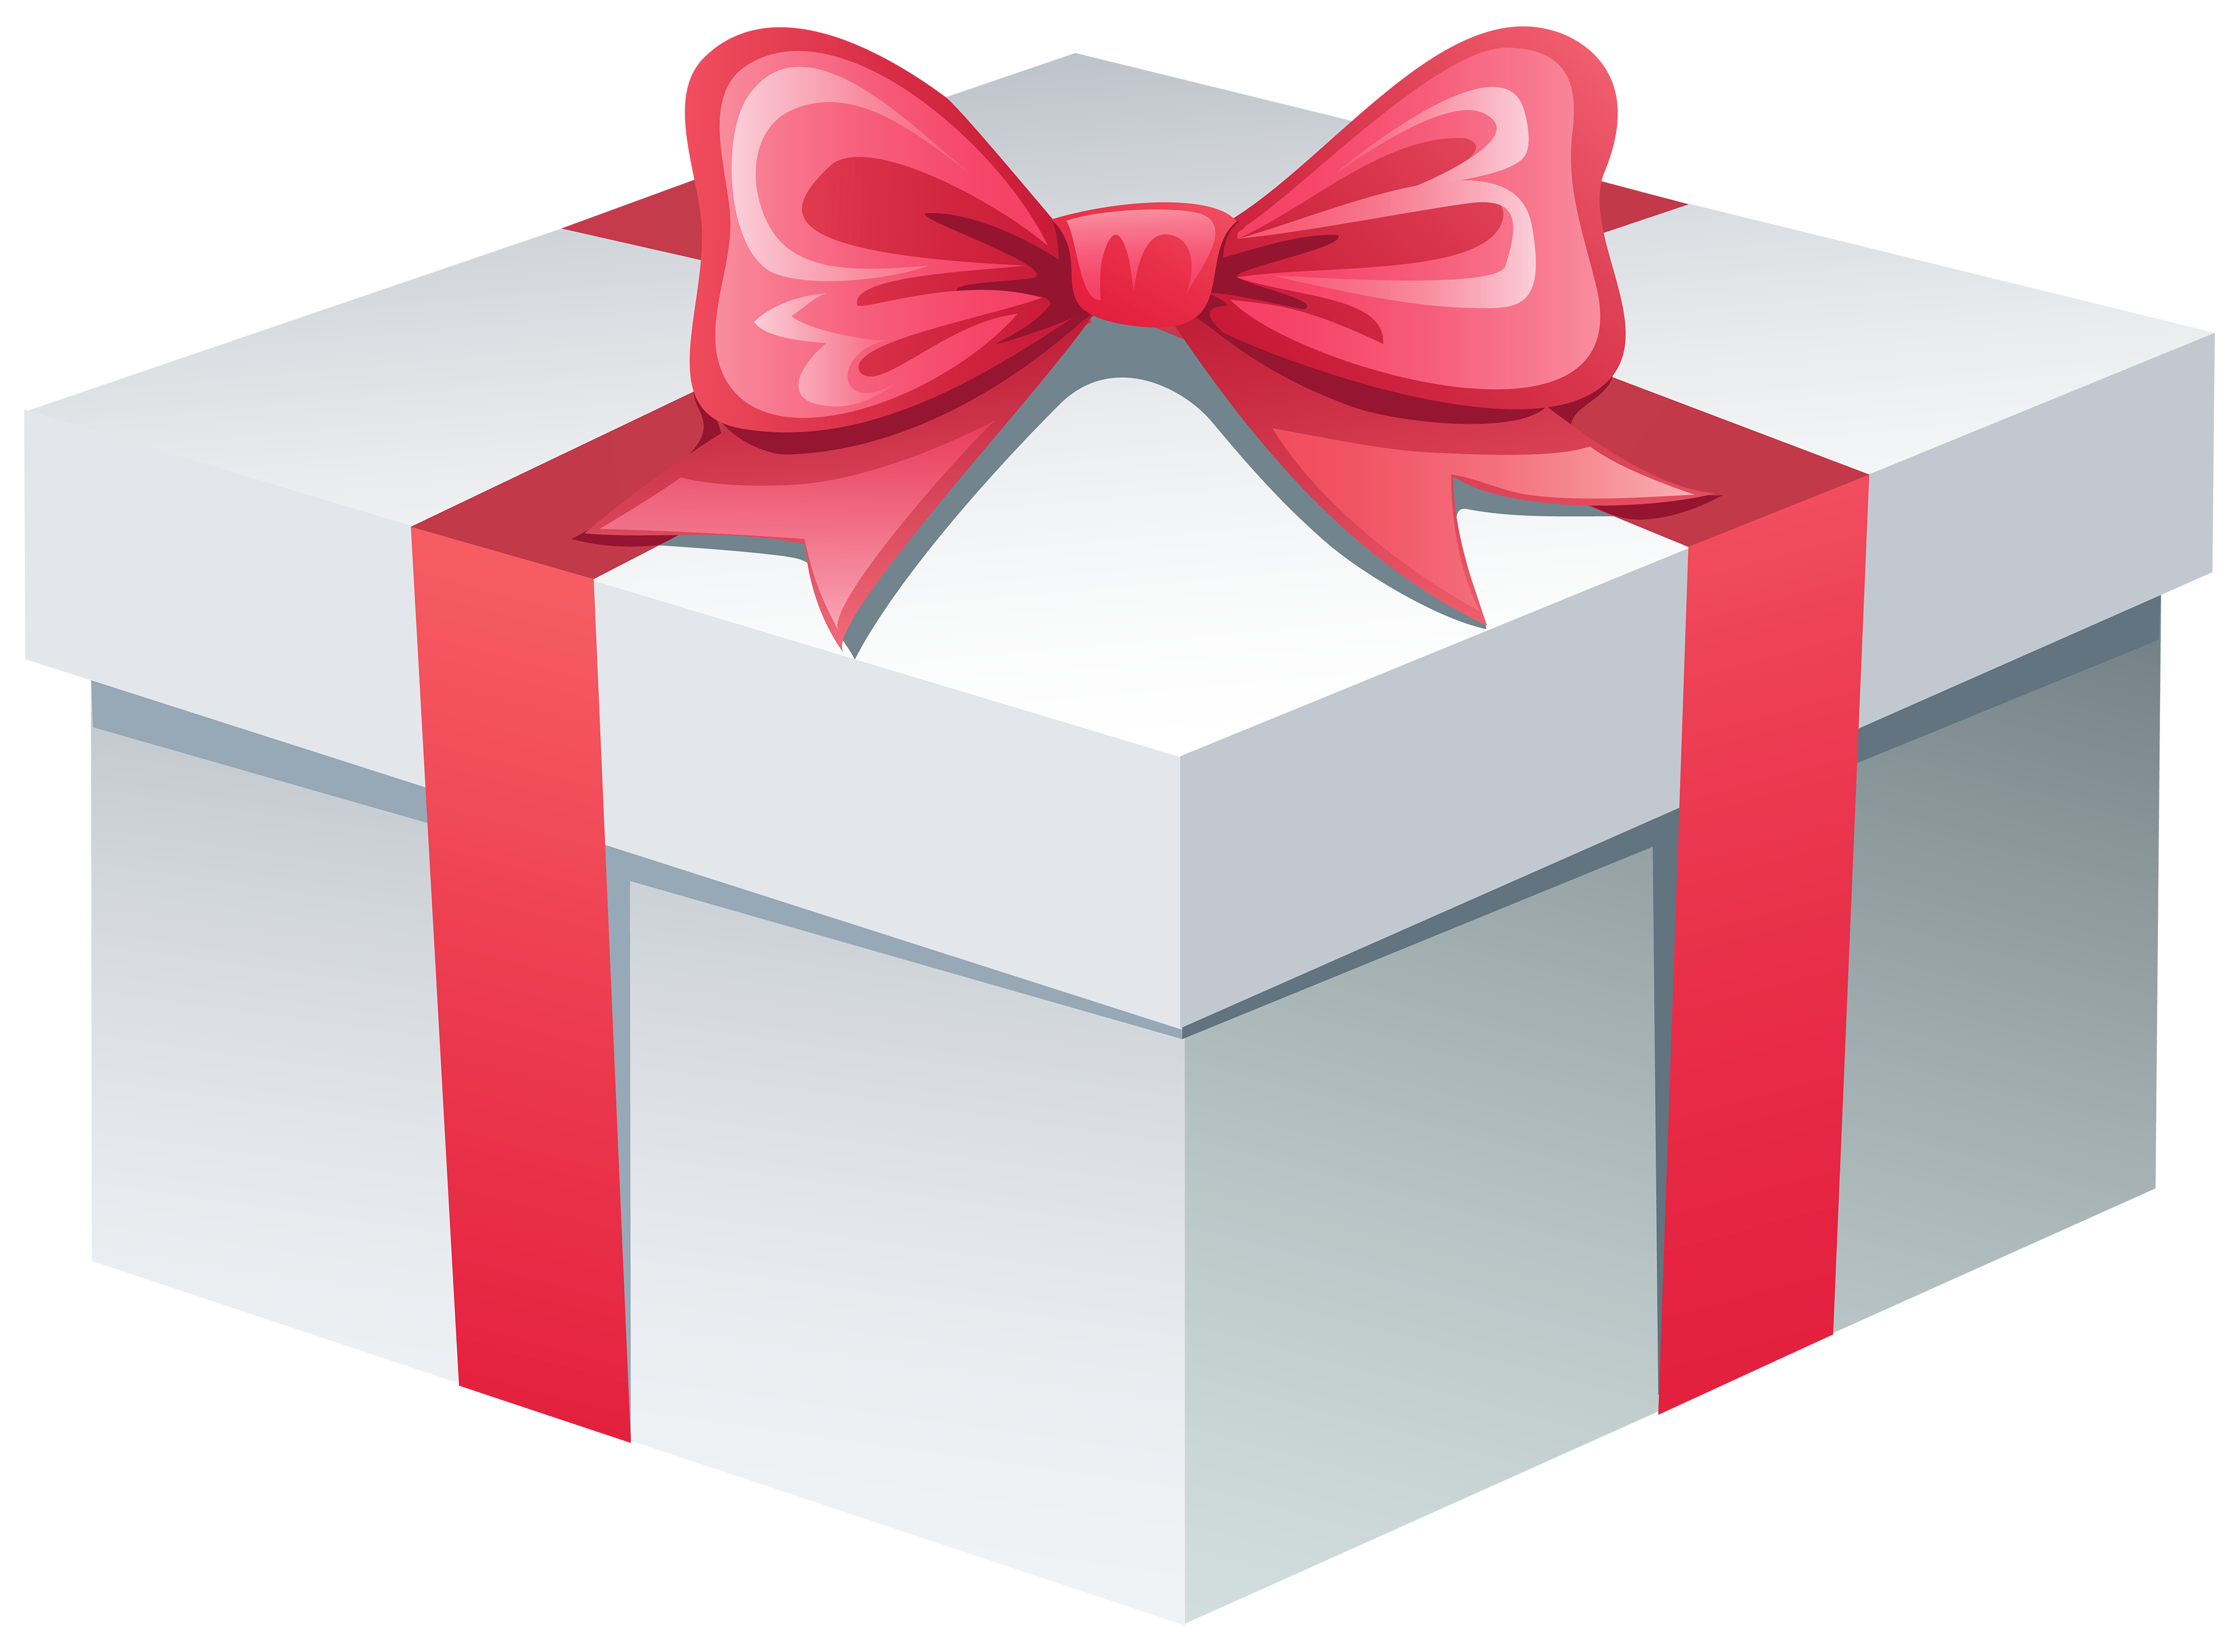 Gift clipart special gift. Box png best web